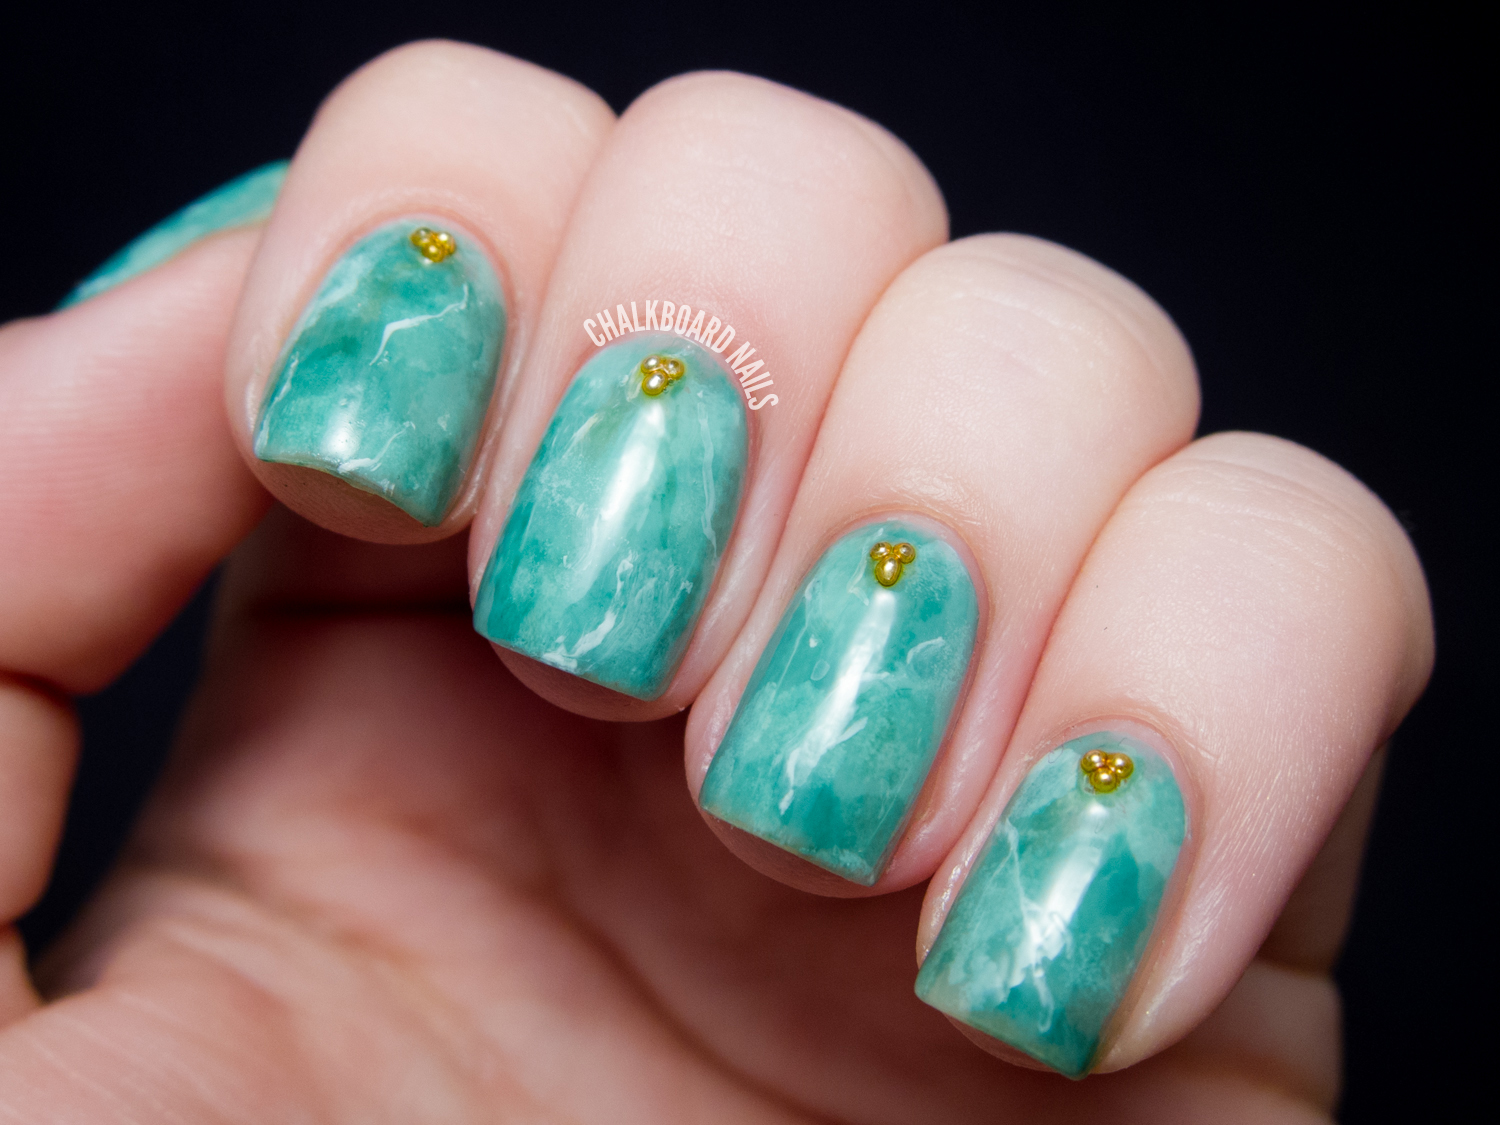 31DC2013 Day 04: Green Jade Nails | Chalkboard Nails | Nail Art Blog